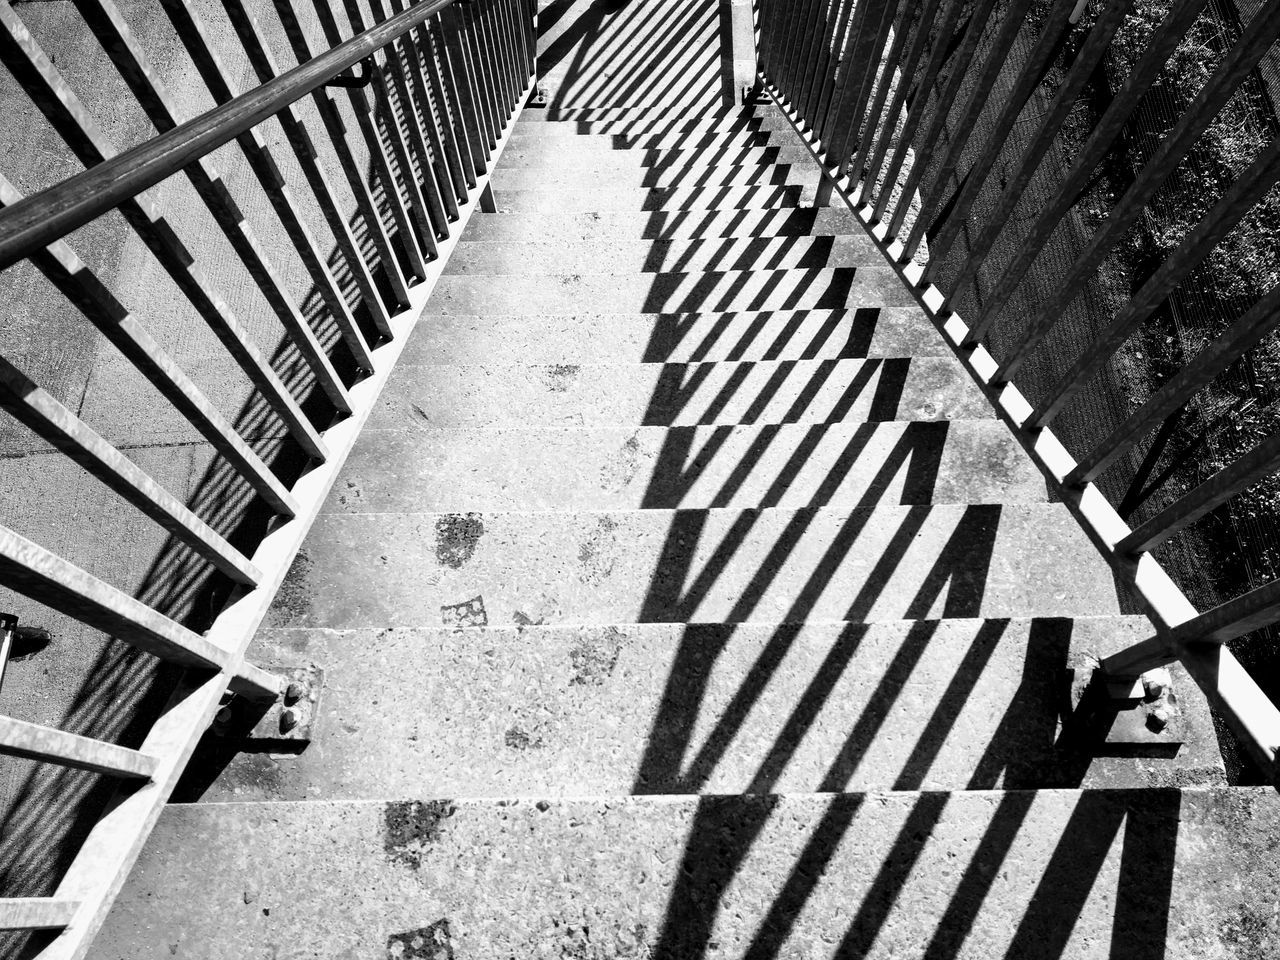 High Angle View Of Shadow On Stairs